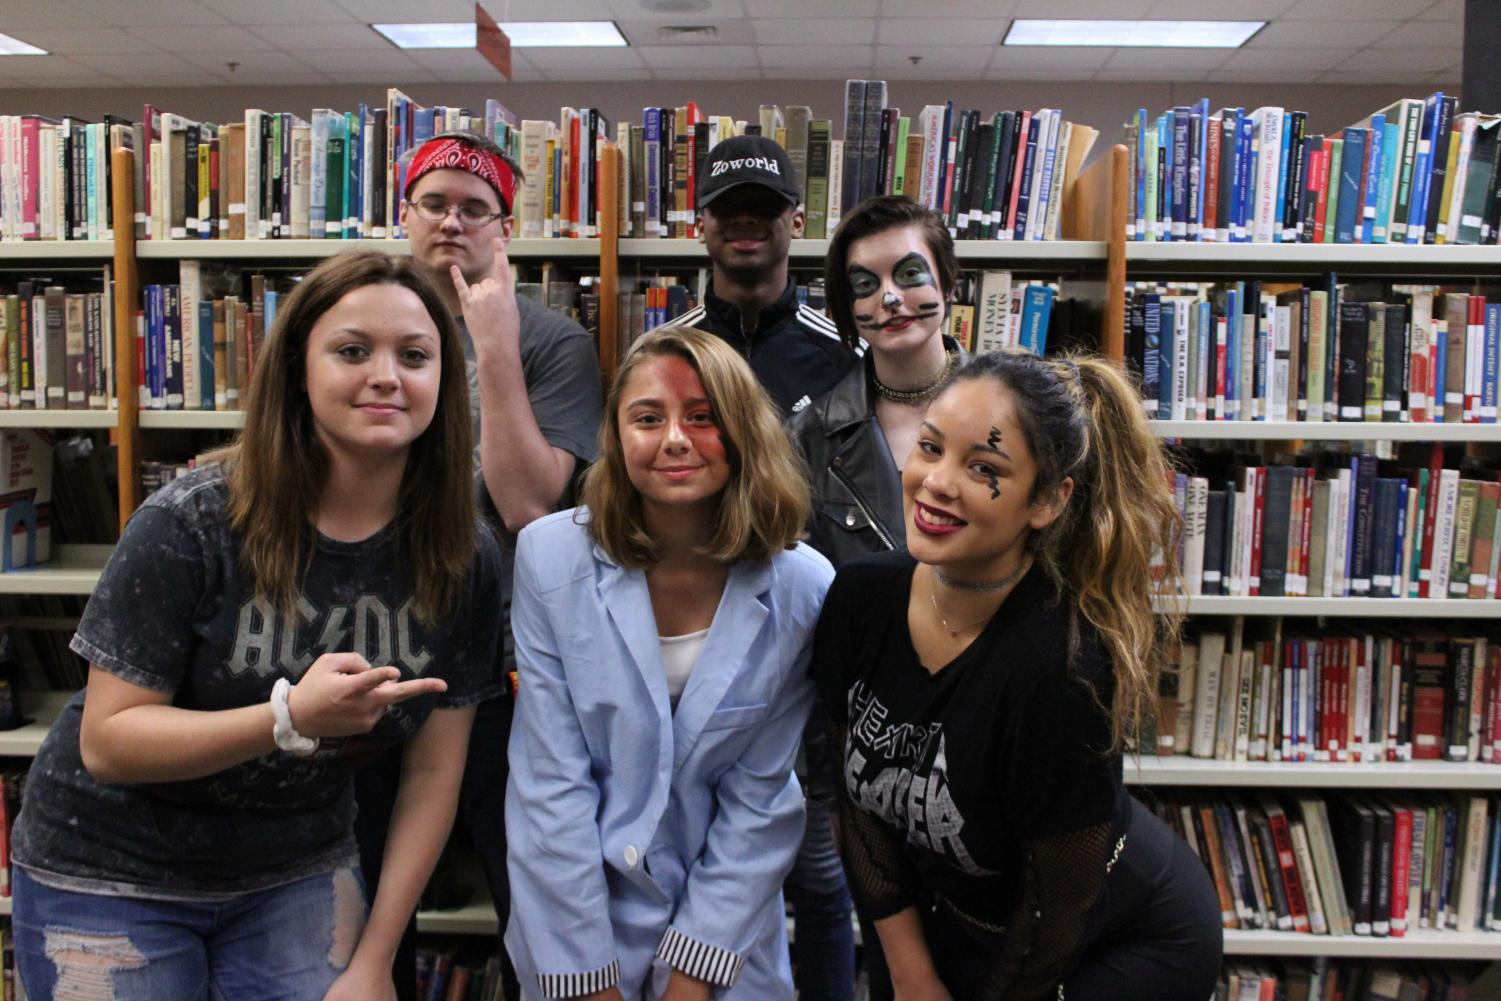 Mrs.+Johnson%27s+library+workers+pose+together+for+a+quick+picture.+